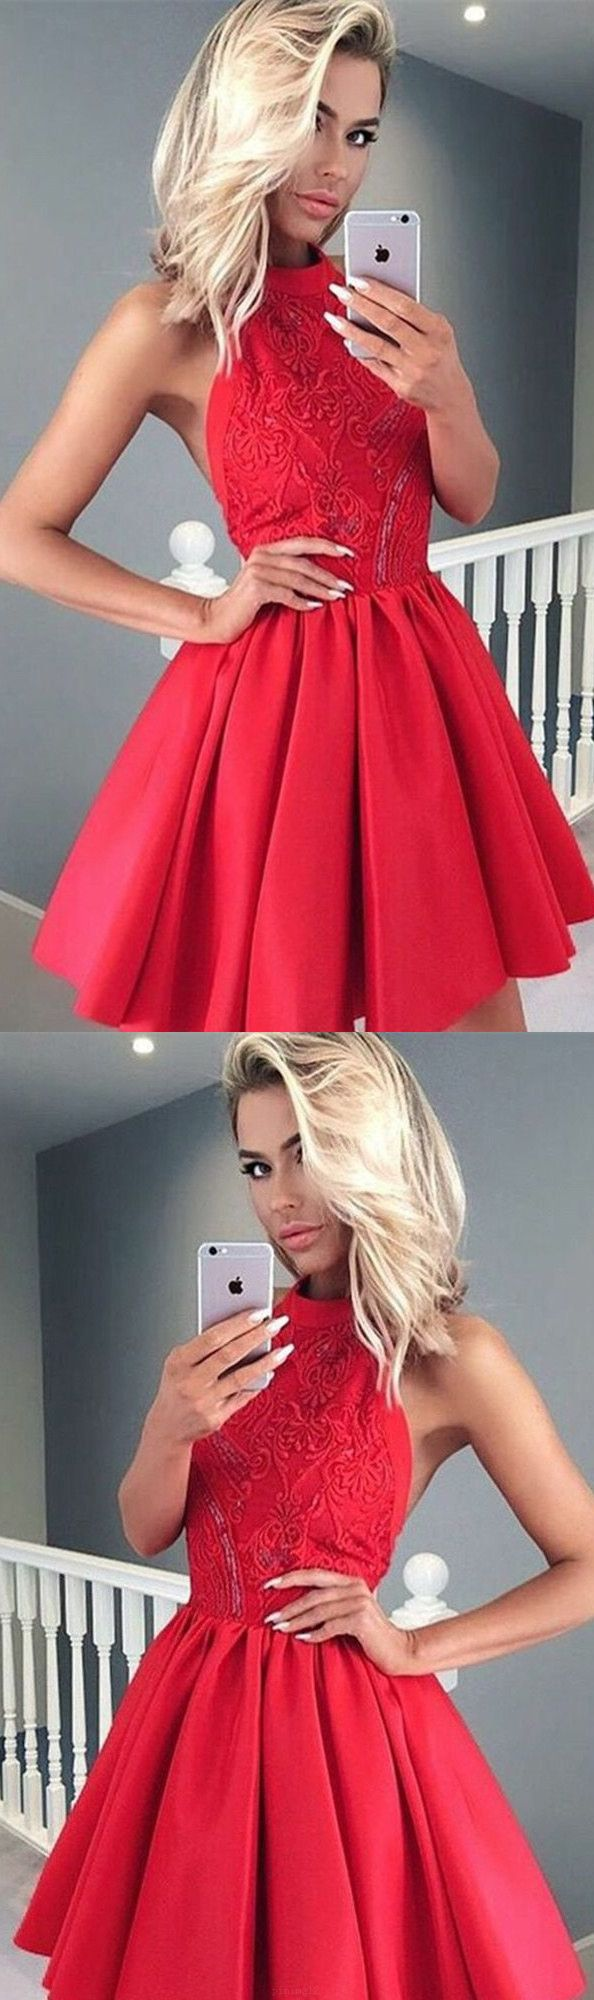 Red Prom Dresses, Short Prom Dresses, Prom Dresses Short, Backless Prom Dresses, Short Red Prom Dresses, Halter Homecoming Dresses, Short Homecoming Dresses, Prom Short Dresses, Red Homecoming Dresses, Red Party Dresses, Backless Homecoming Dresses, Pleated Prom Dresses, Halter Party Dresses